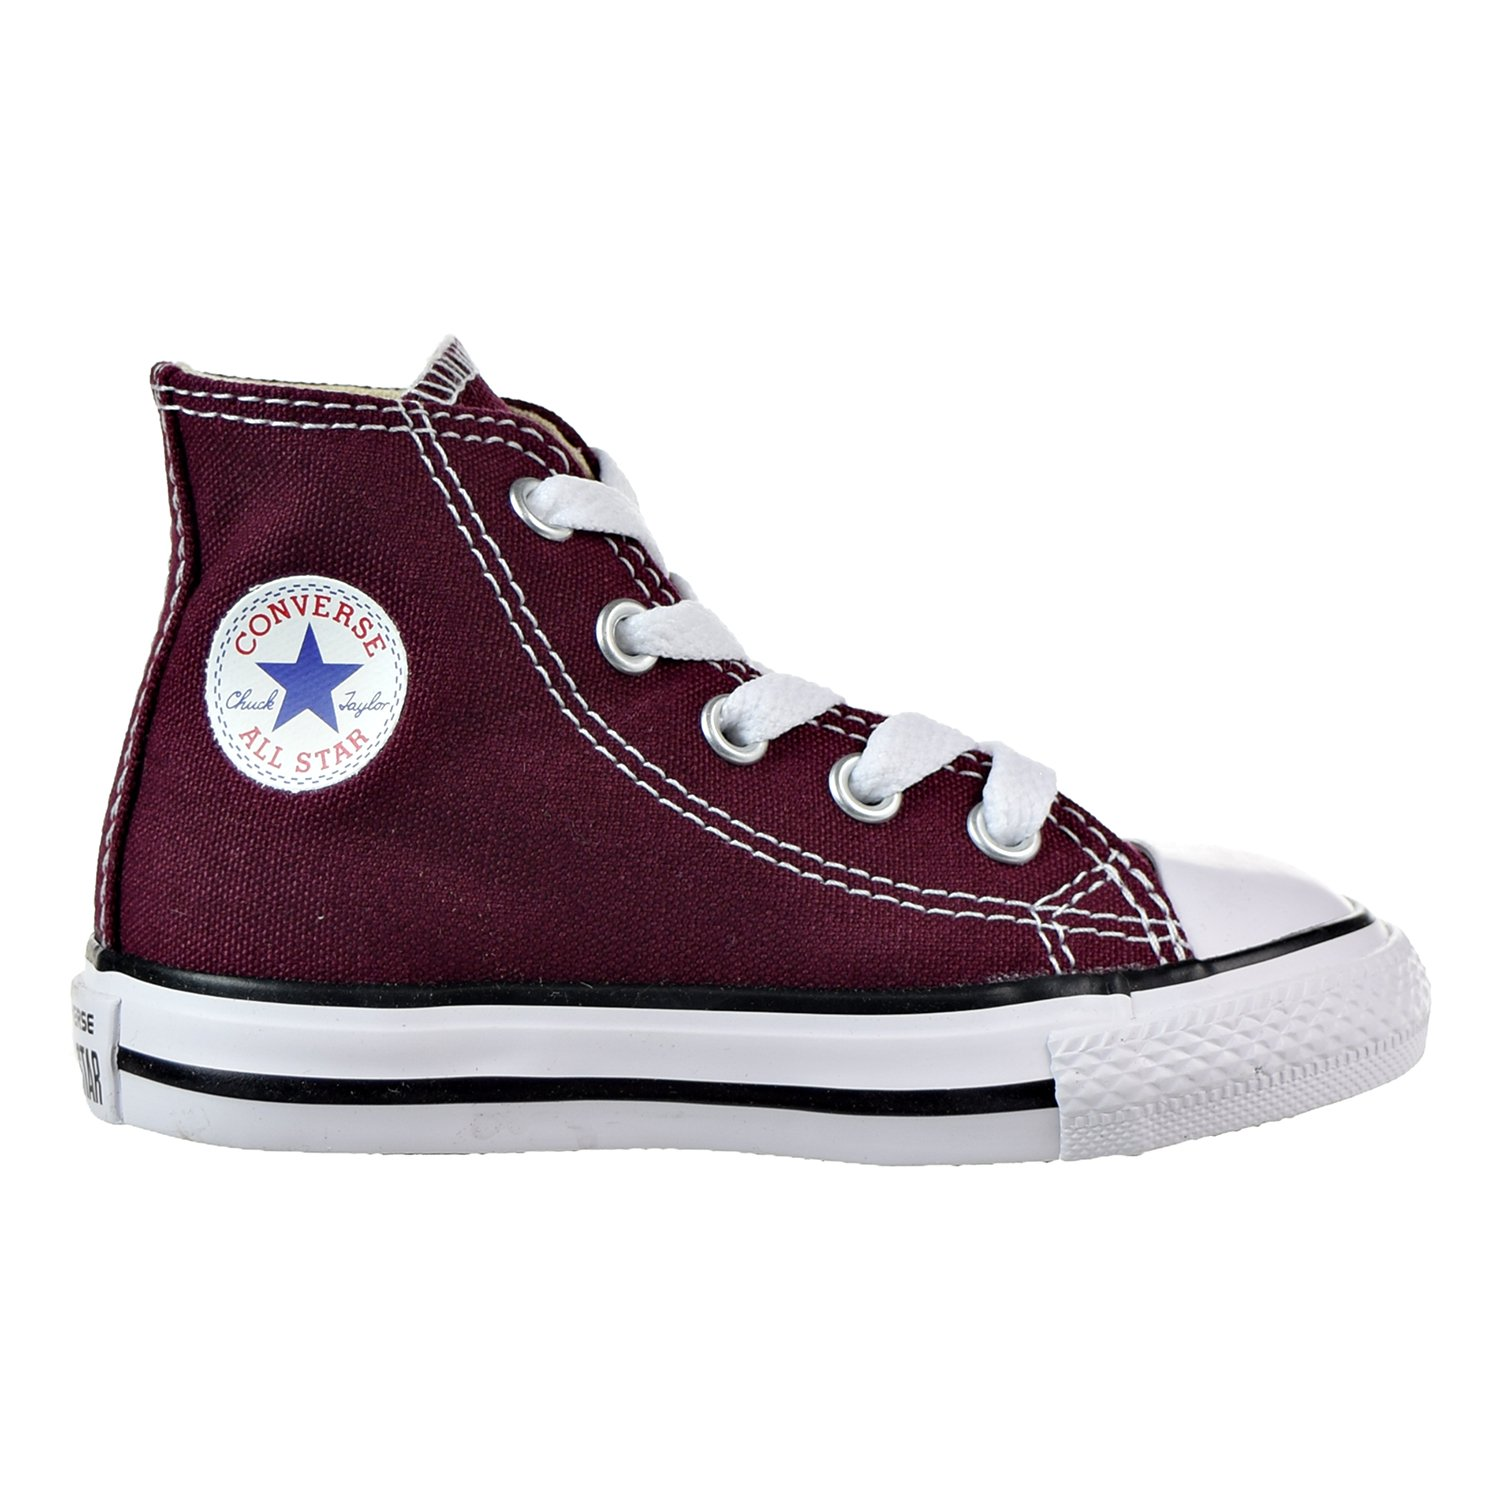 Converse Chuck Taylor All Star Hi Femmes Baskets 557930C